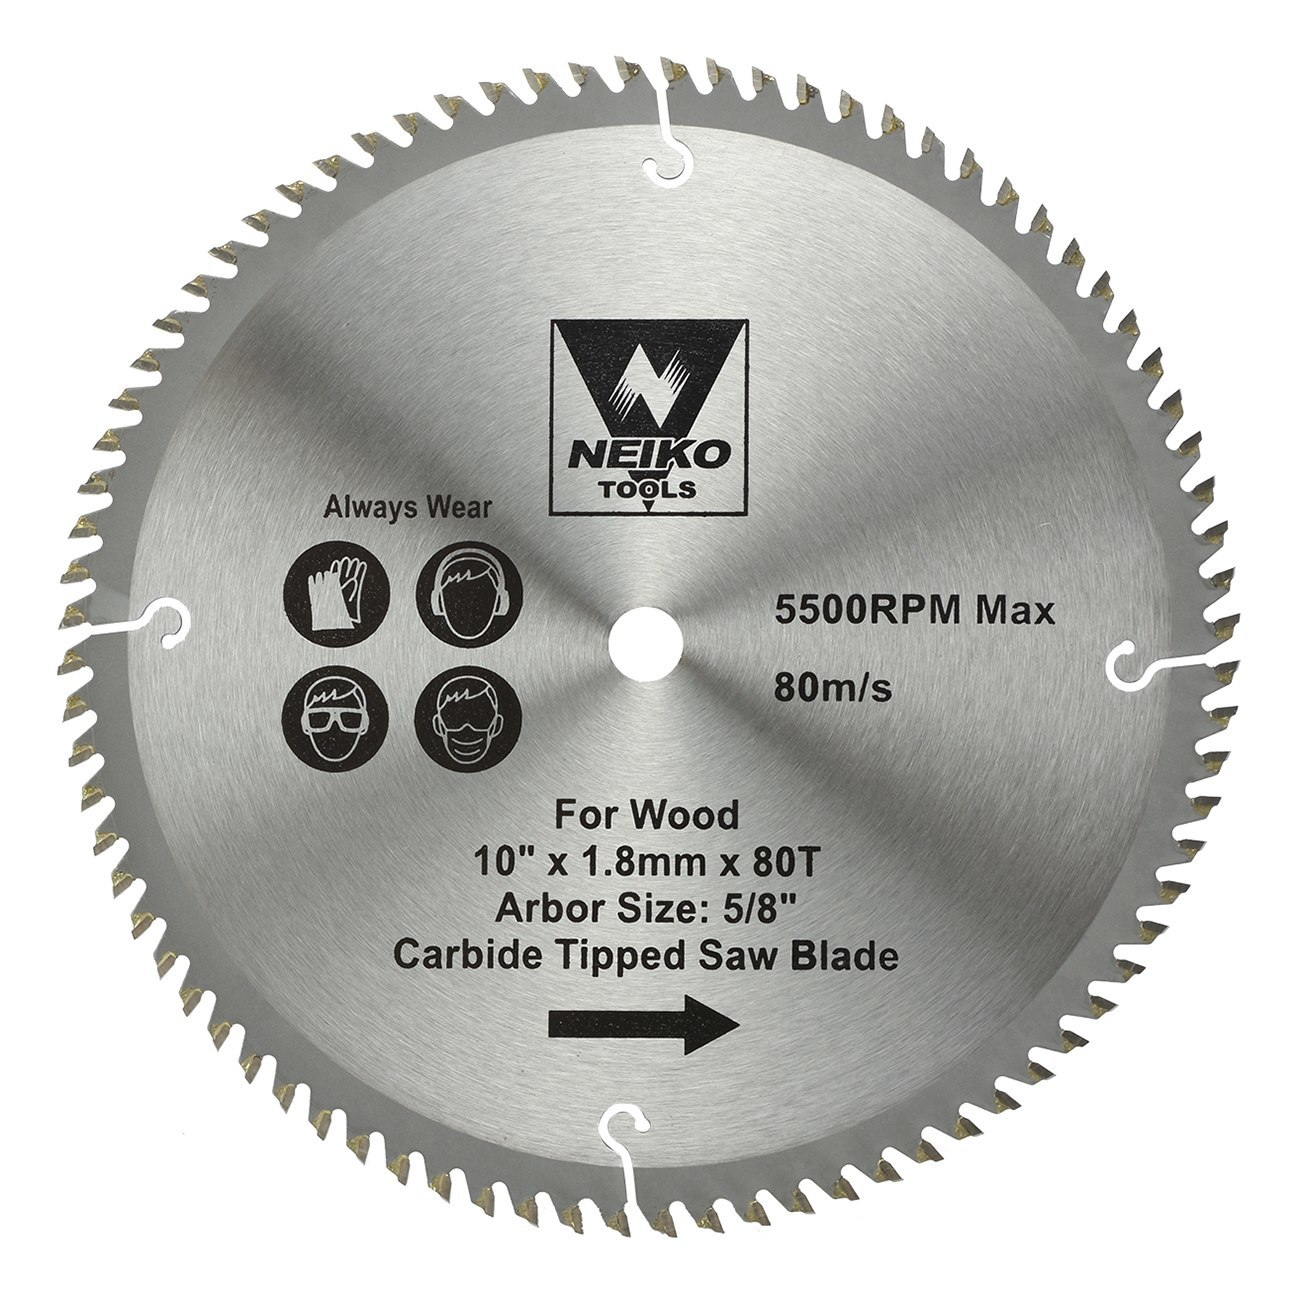 Table saw blades for wood carbide tipped 10 inch x 80 for 10 inch table saw blades